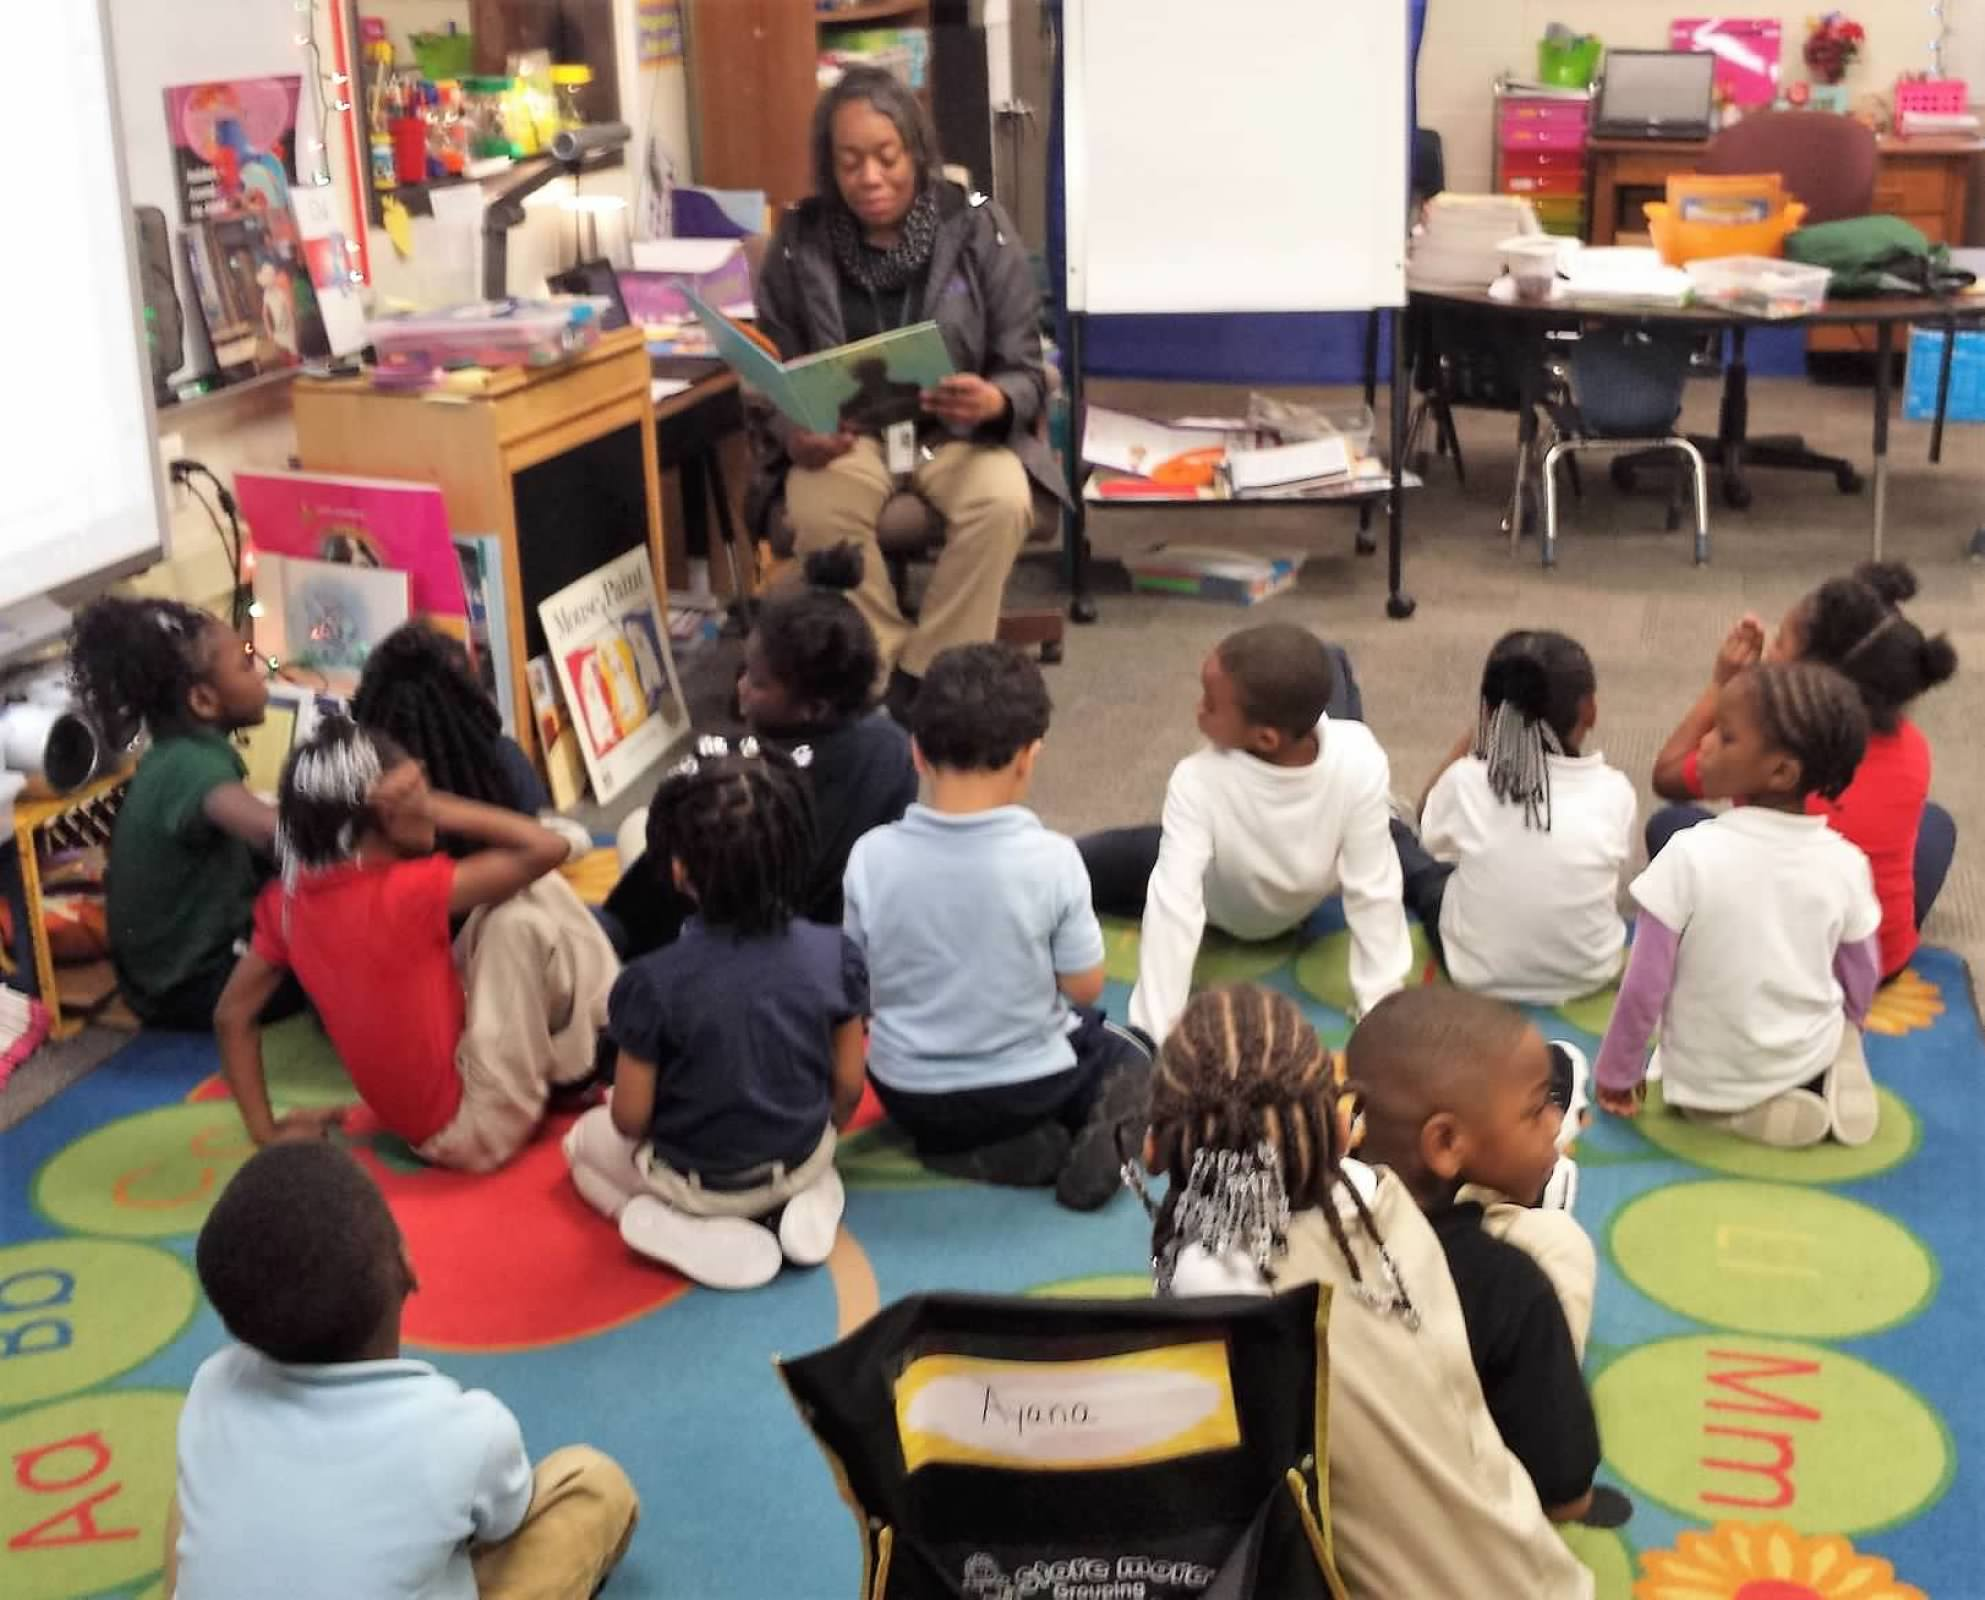 21st Century Community Learning Grant from State for $200,000 Propels Enrichment Services at Mary Ford Elementary